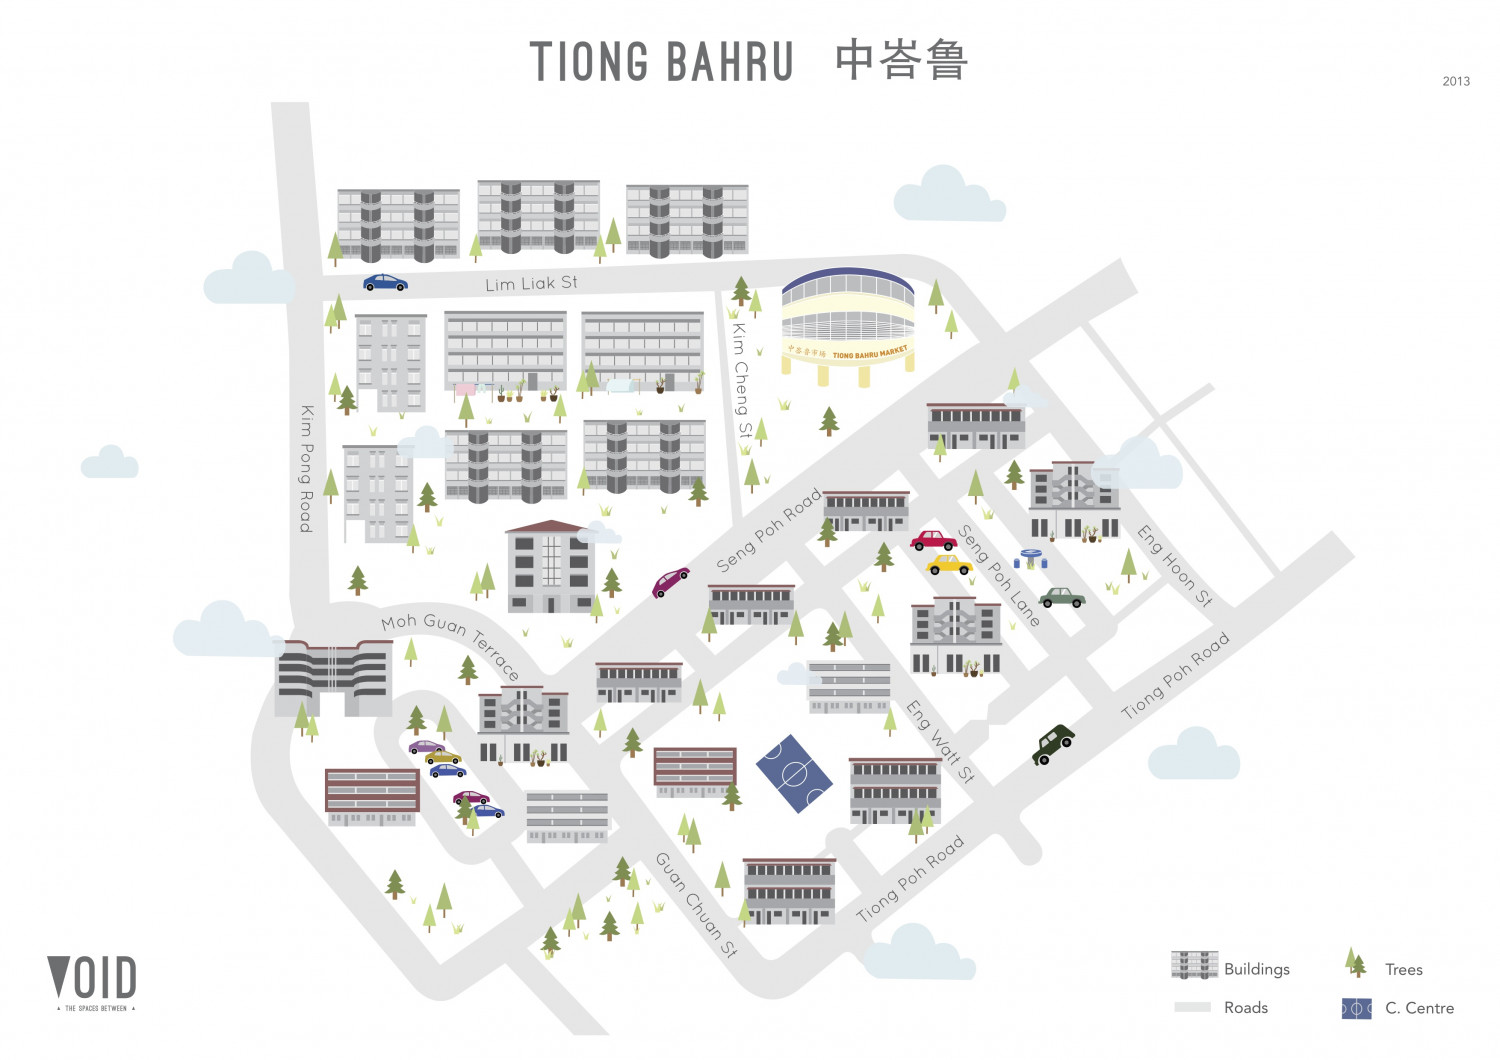 Tiong Bahru Infographic